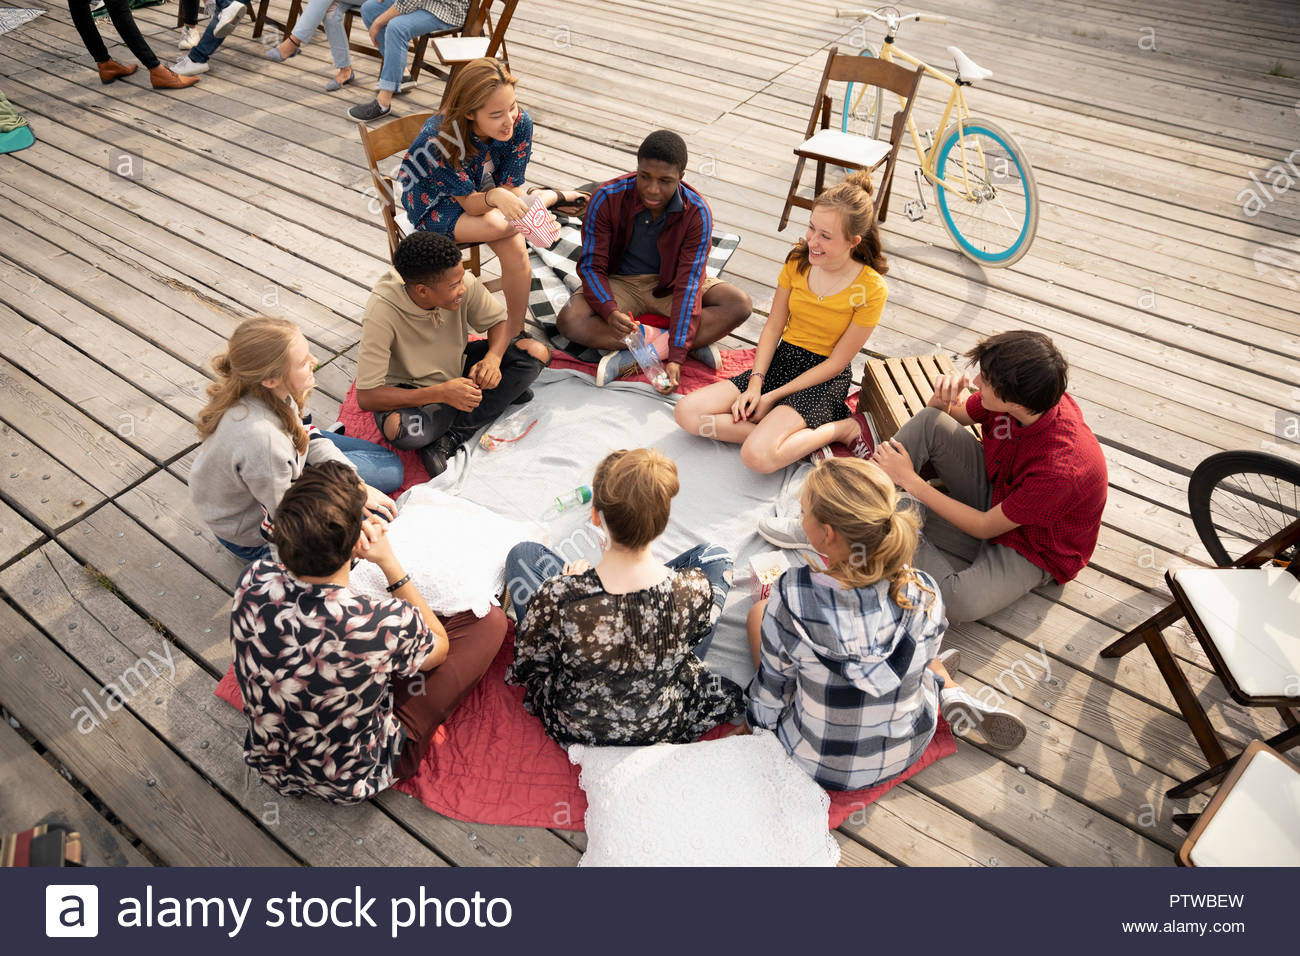 Teenagers hanging out, playing spin the bottle - Stock Image